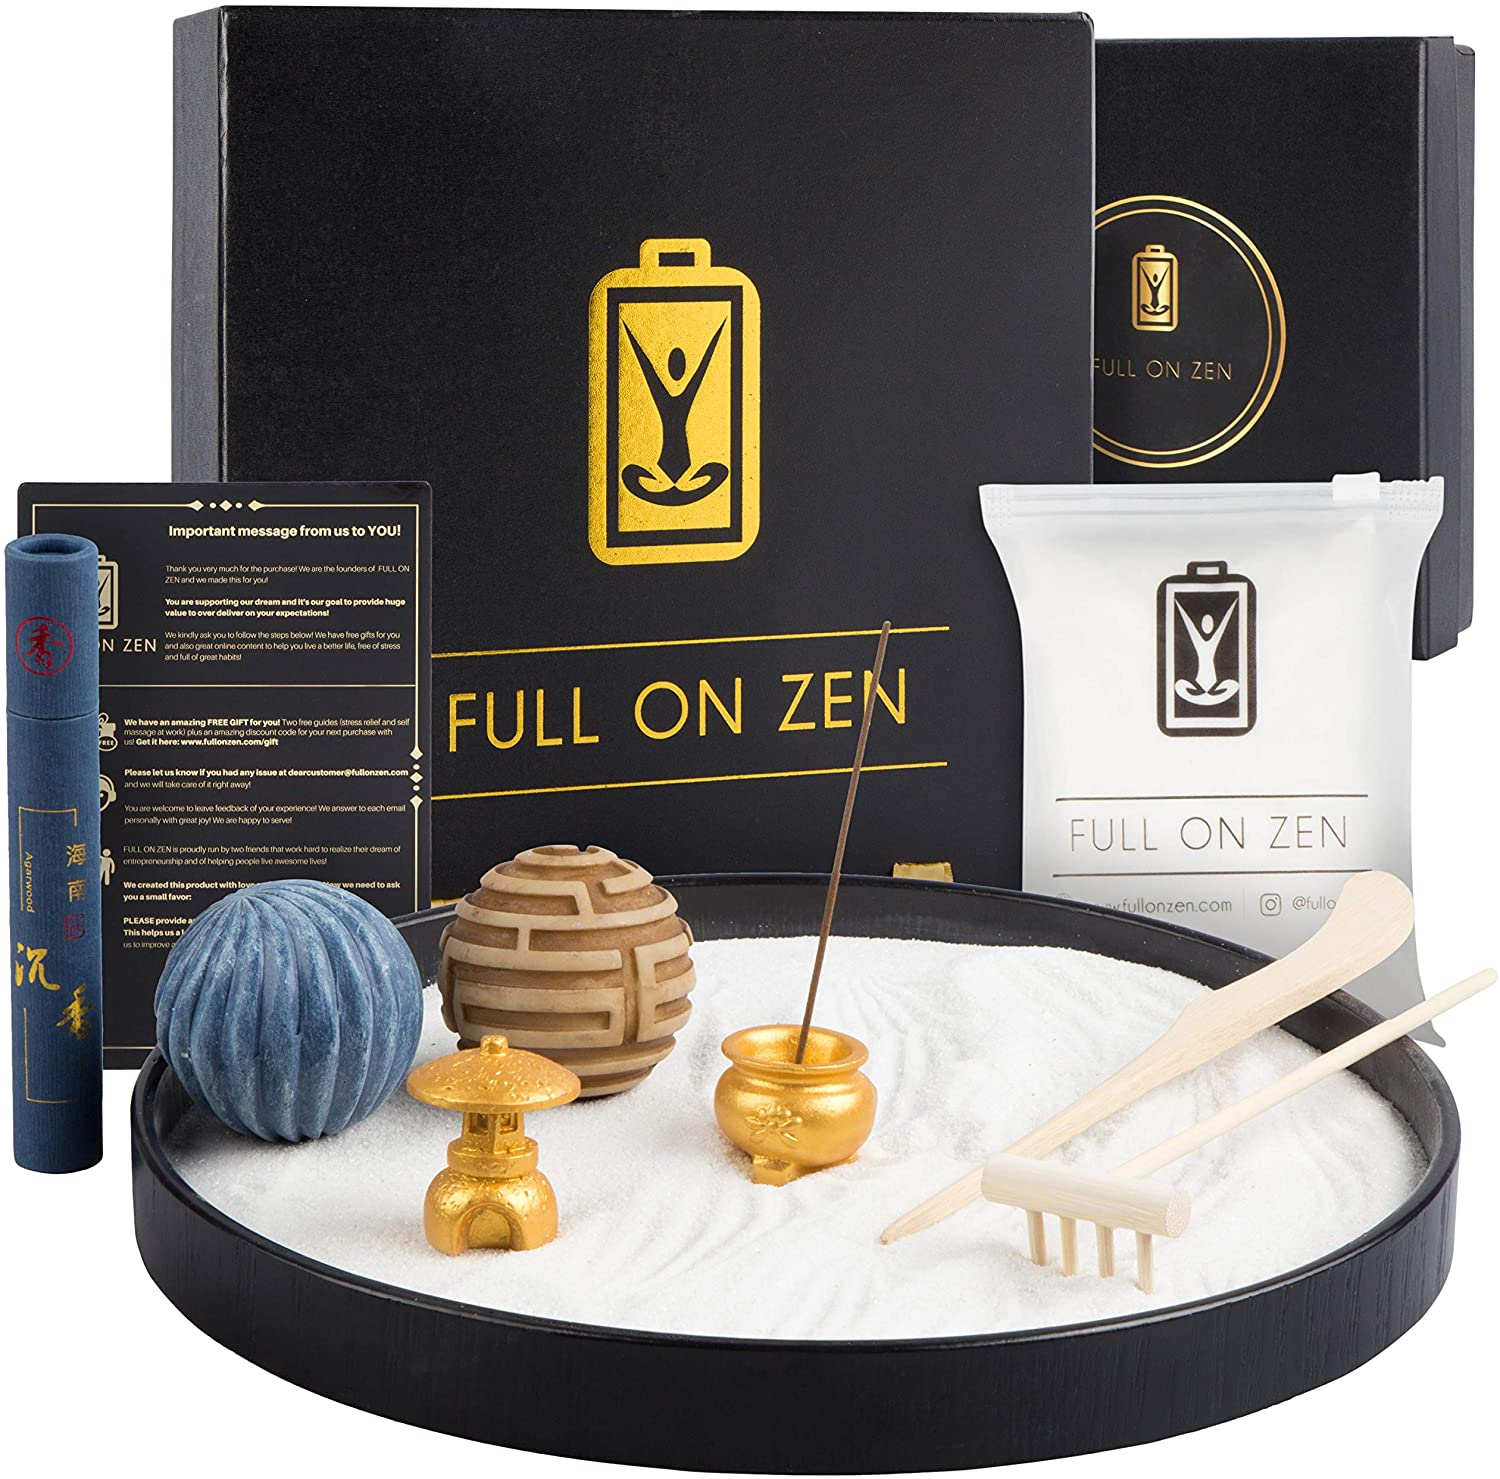 Zen Garden – Incense Kit, Pagoda Temple, White Sand, Rake tools Set and Flow Balls – Japanese Desk Sand Garden to Improve Concentration and Mindulness – Meditation Zen Desk Garden